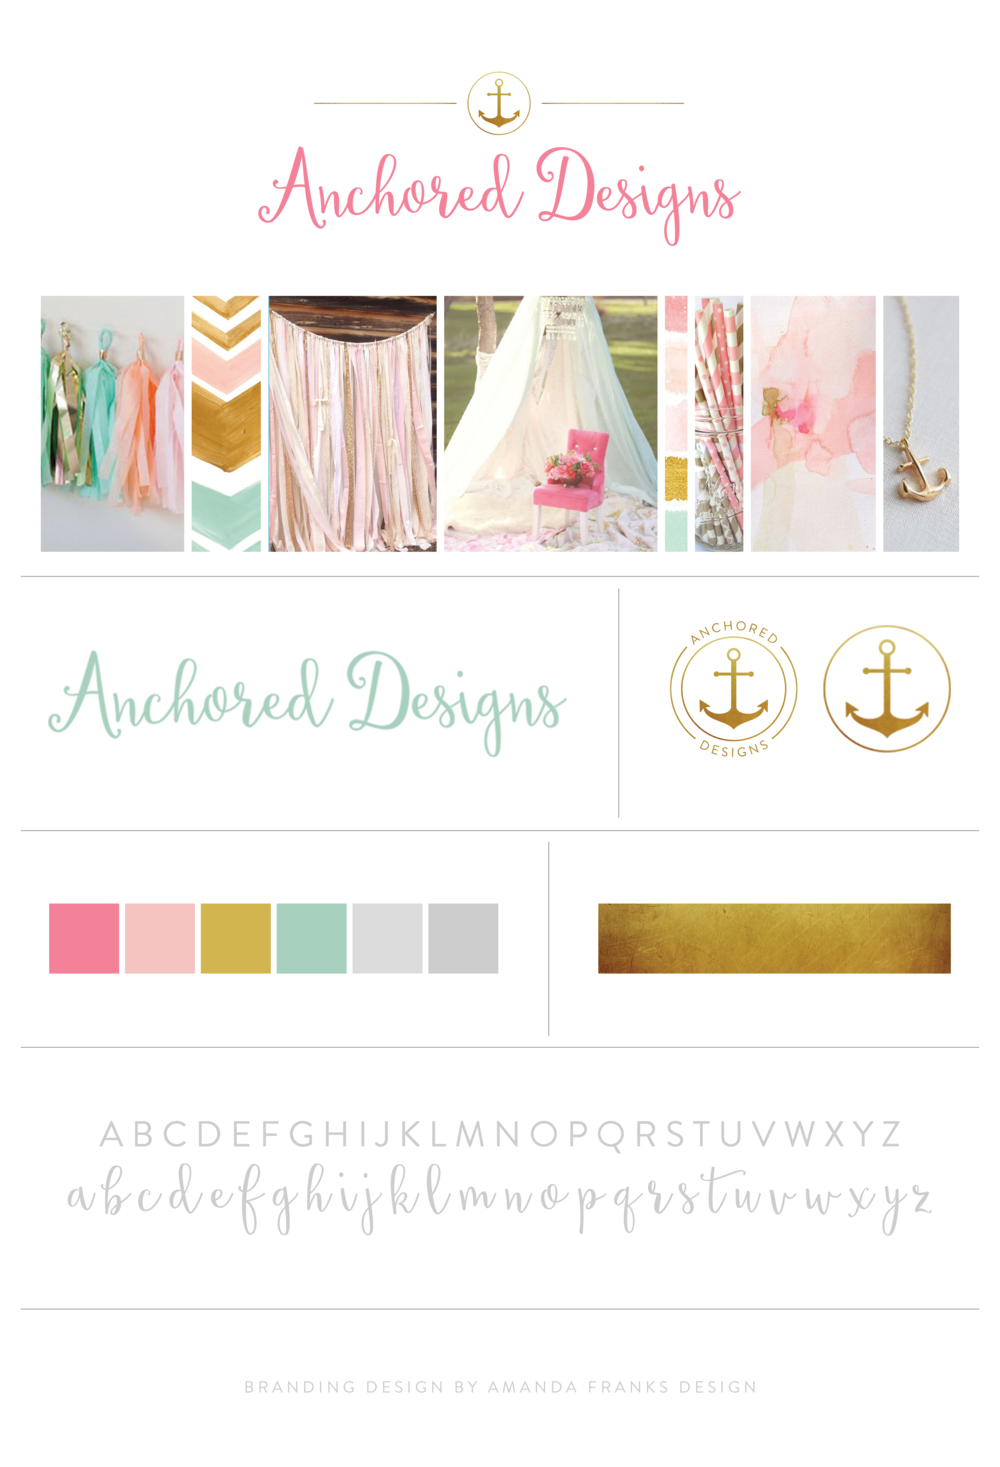 ANCHORED-DESIGNS-BOARD.png